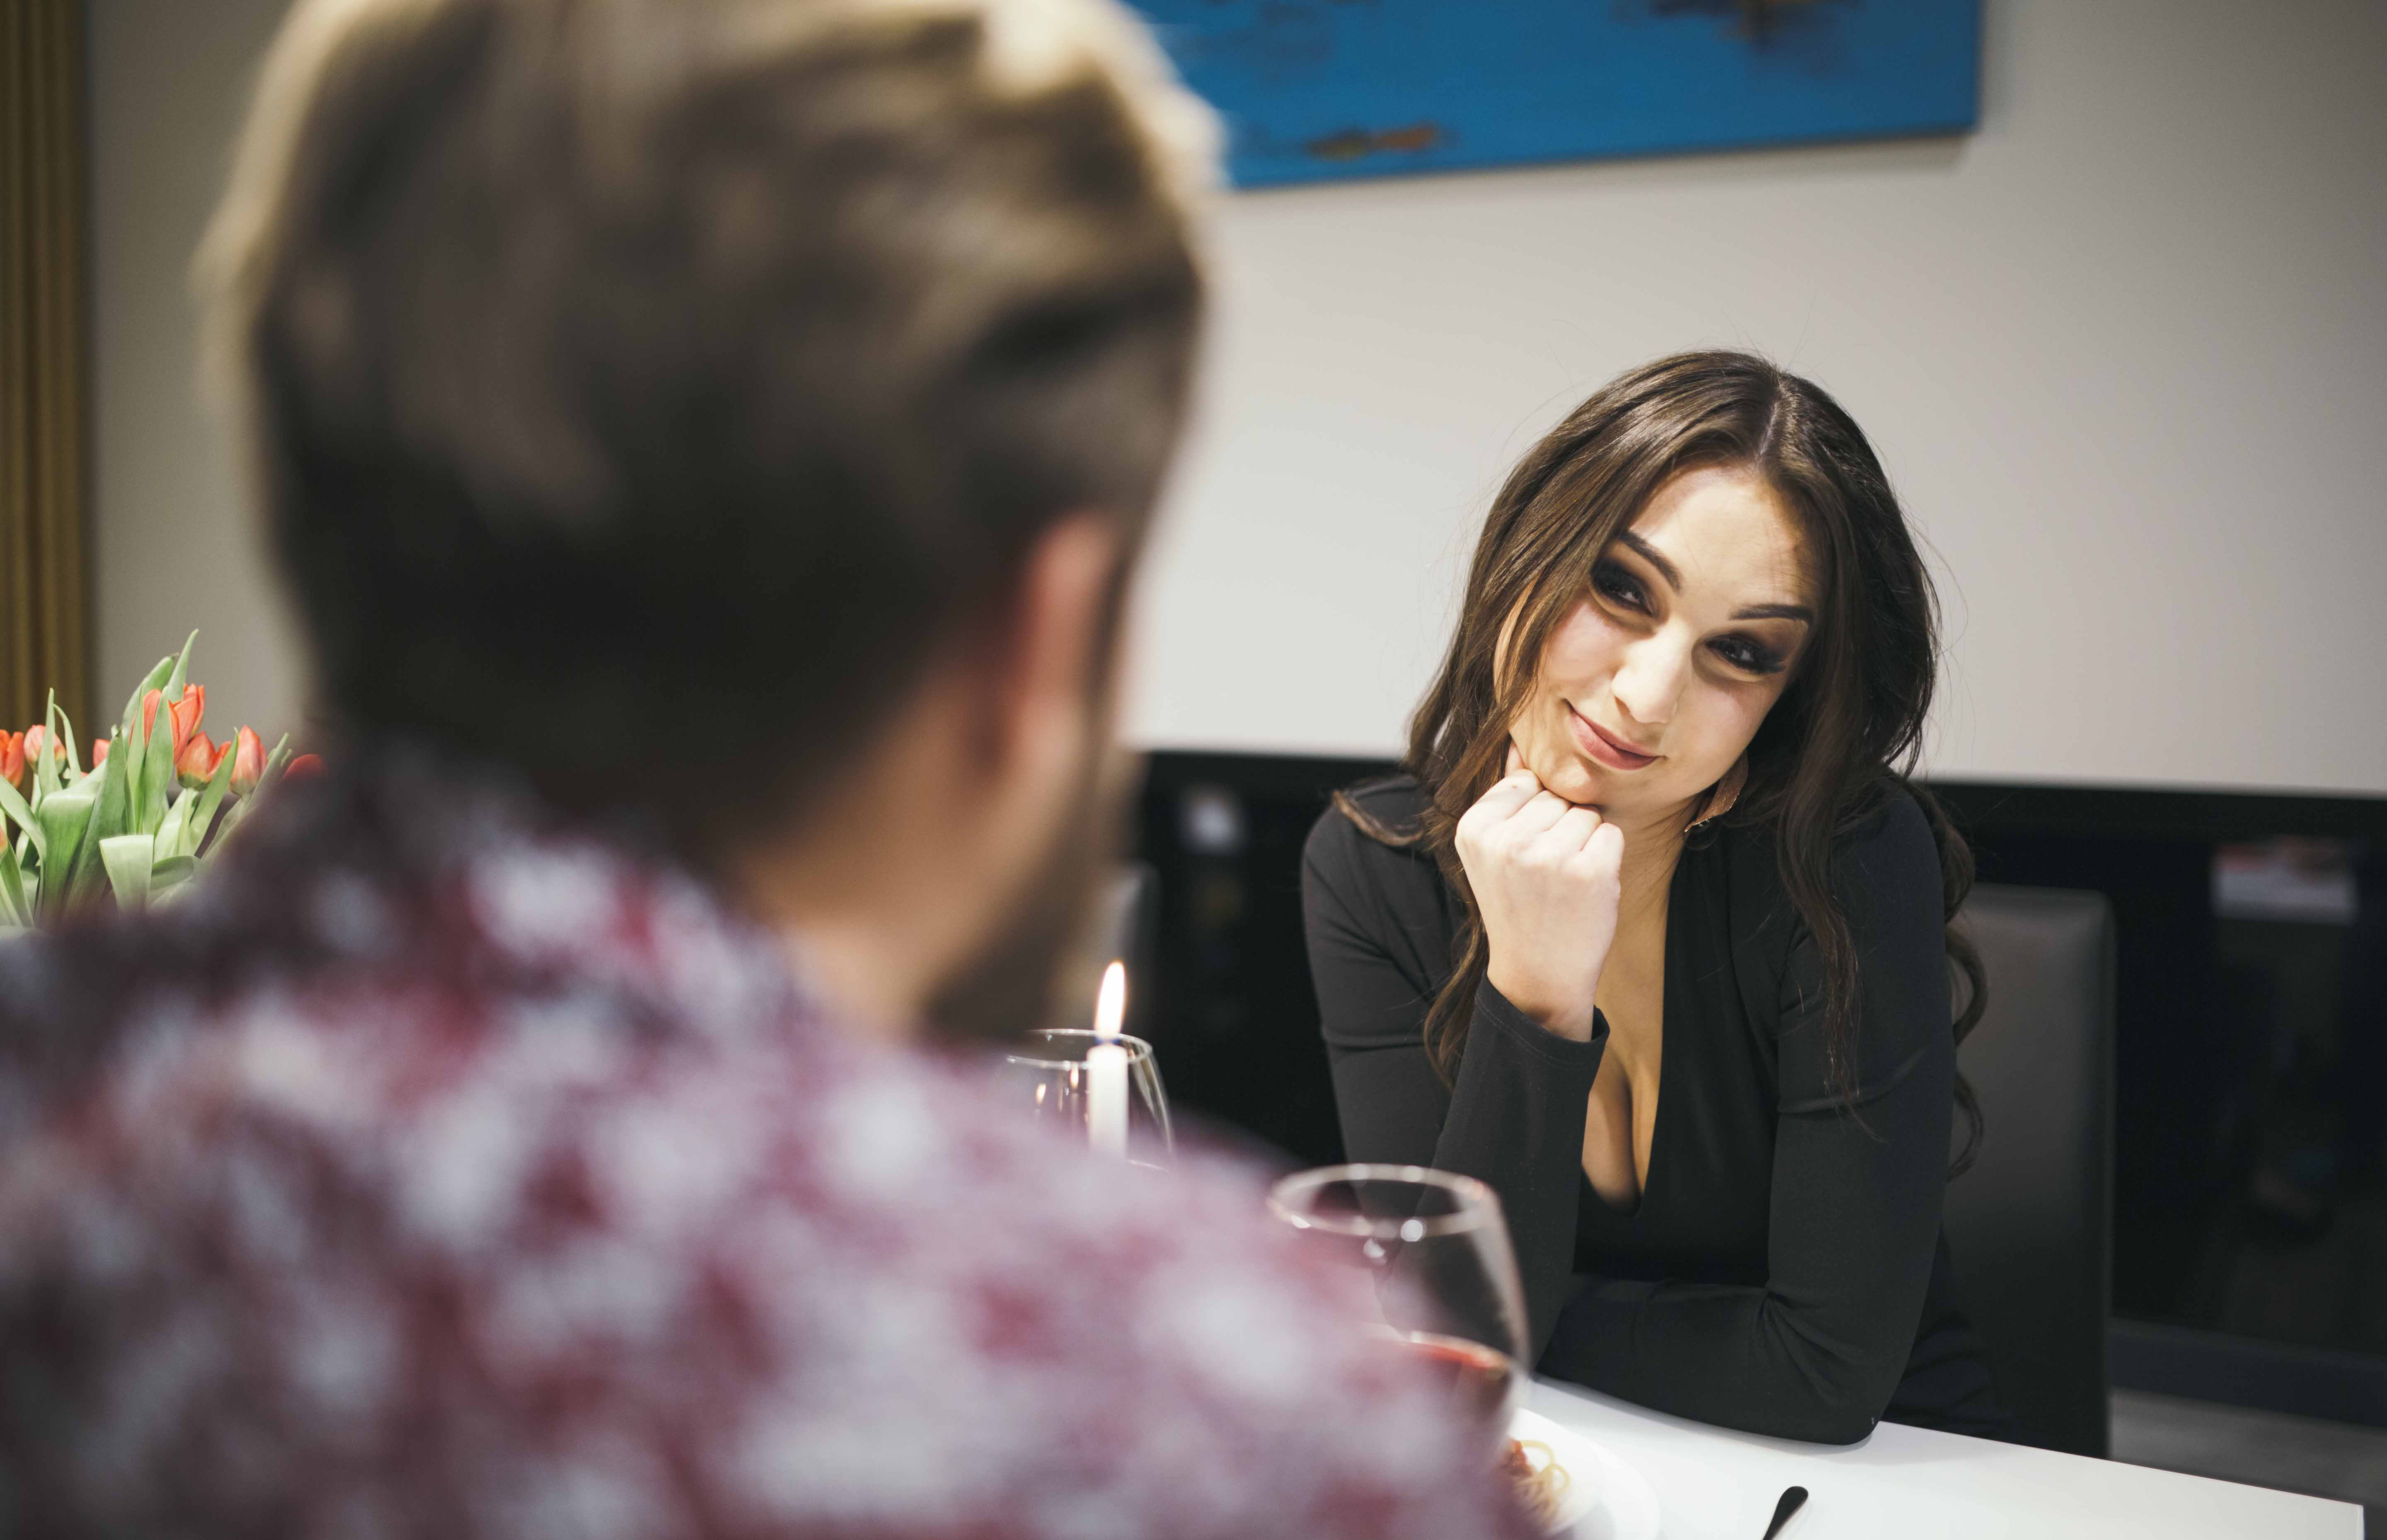 speed dating is a good way of meeting your prospective partner